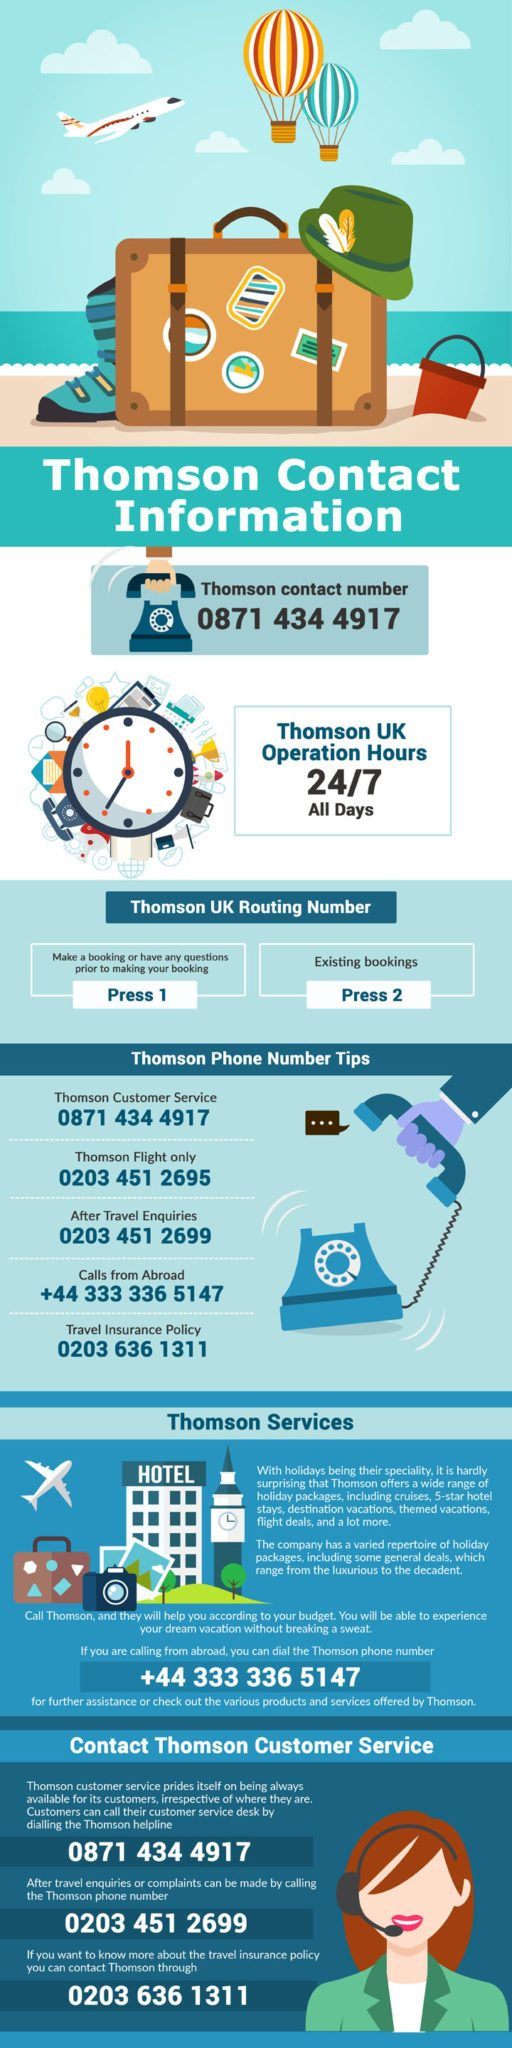 Thomson Helpline